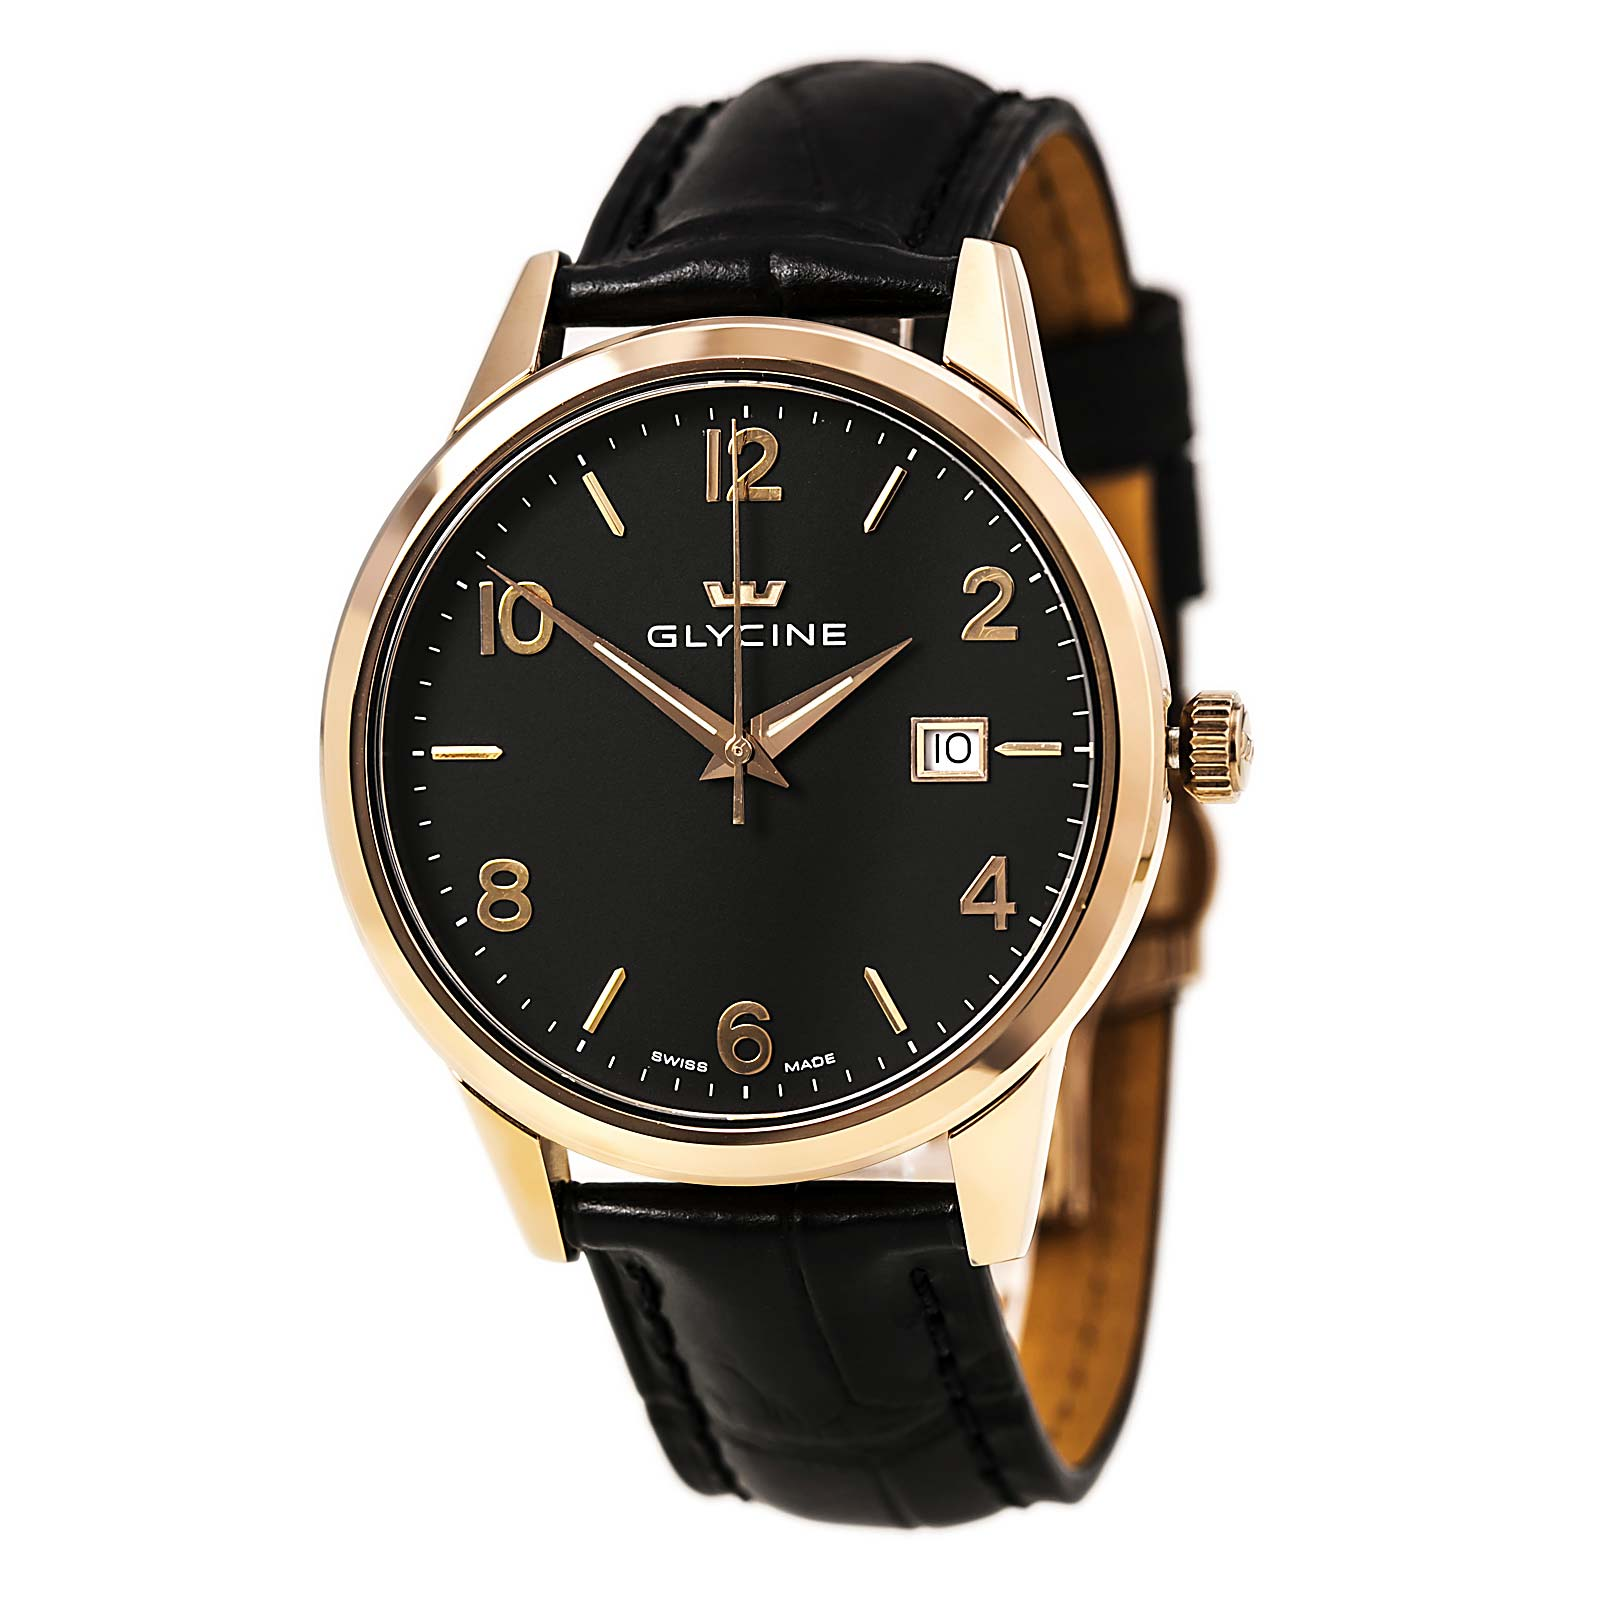 Glycine 3925-29 Men's Classic Black Dial Rose Gold Steel Black Leather Strap Watch